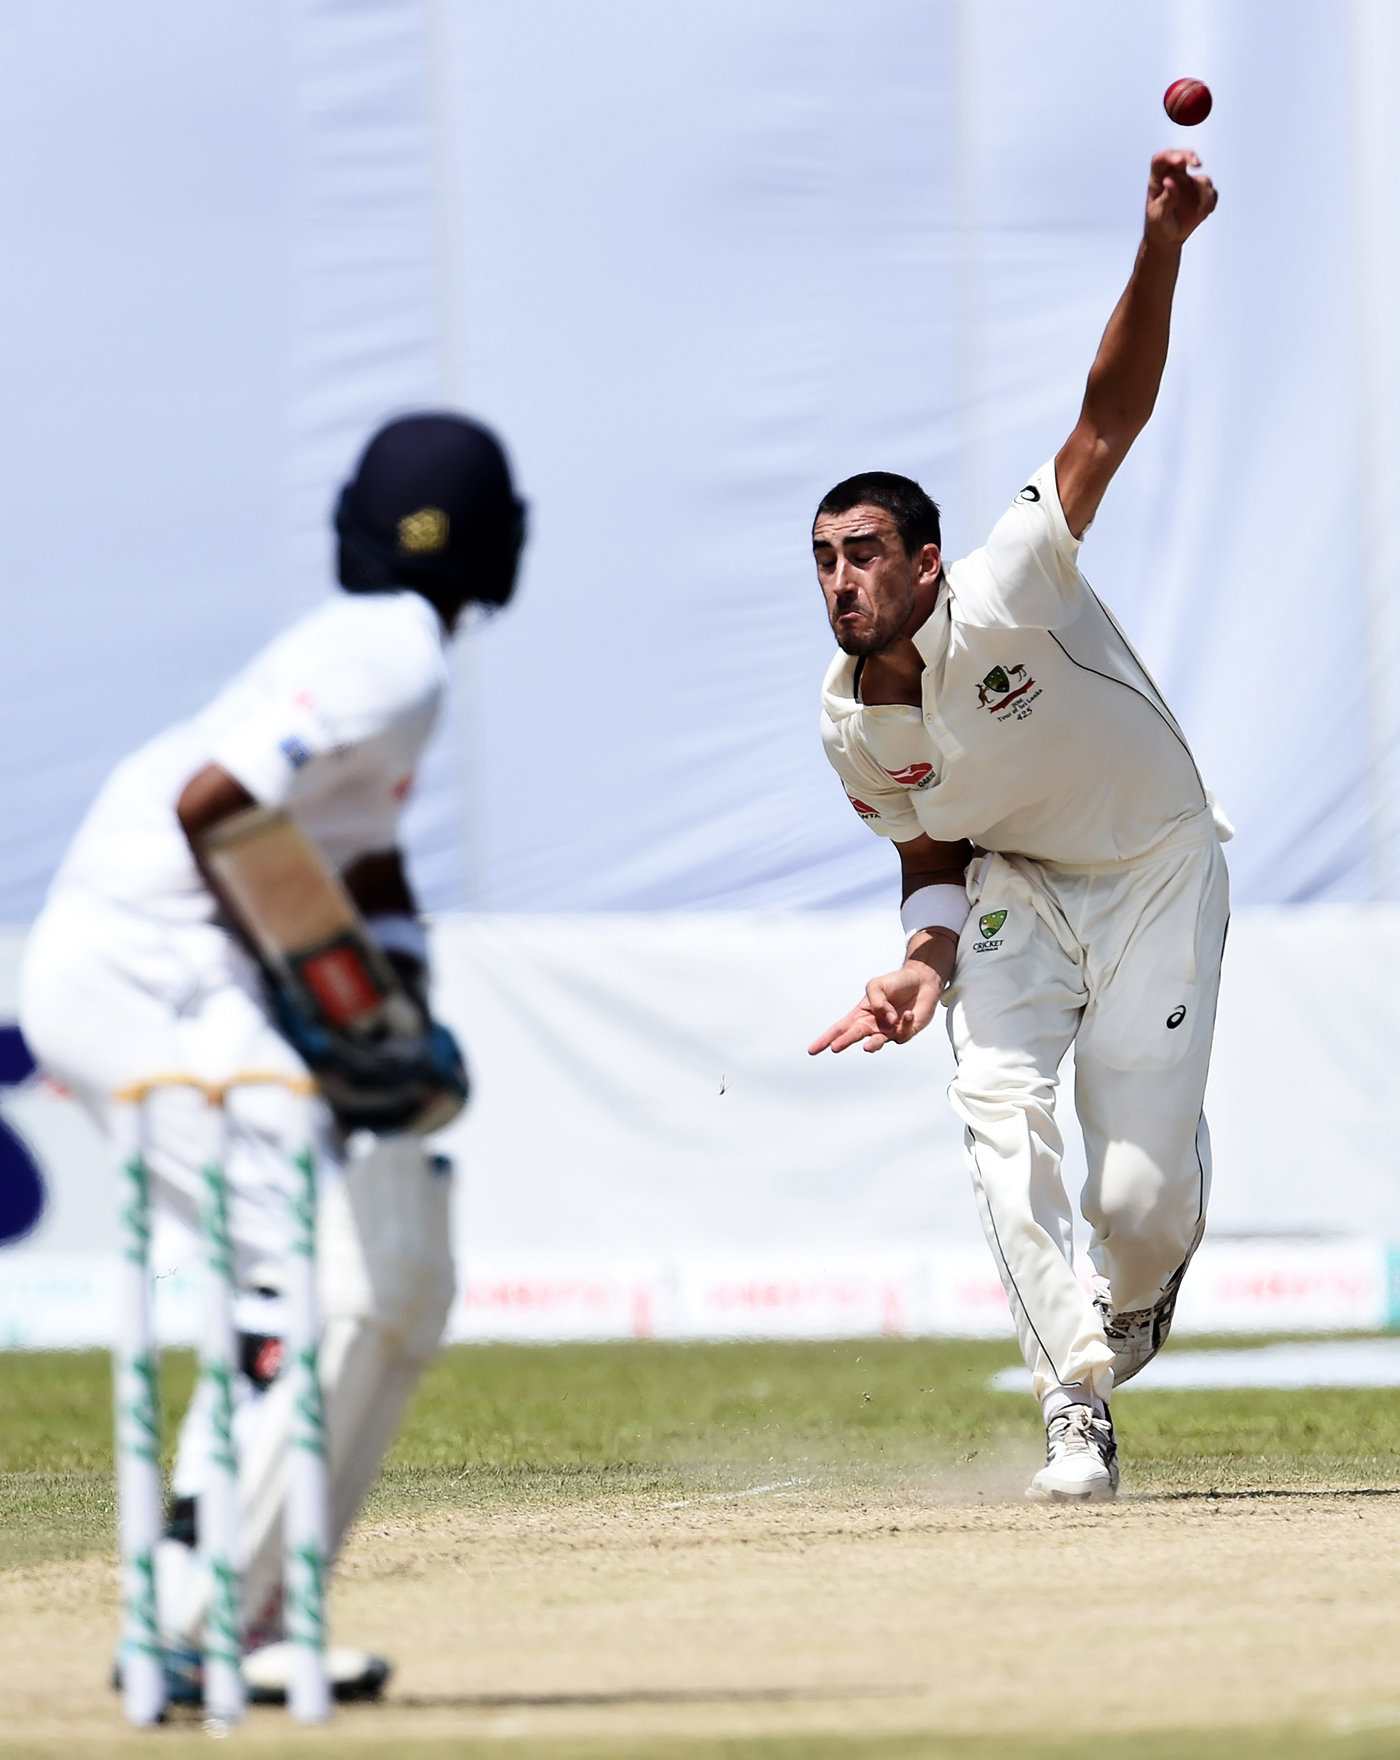 Australia lost all three Tests in Sri Lanka in 2016, but Starc took plenty of wickets, including 11 for 94 in Galle